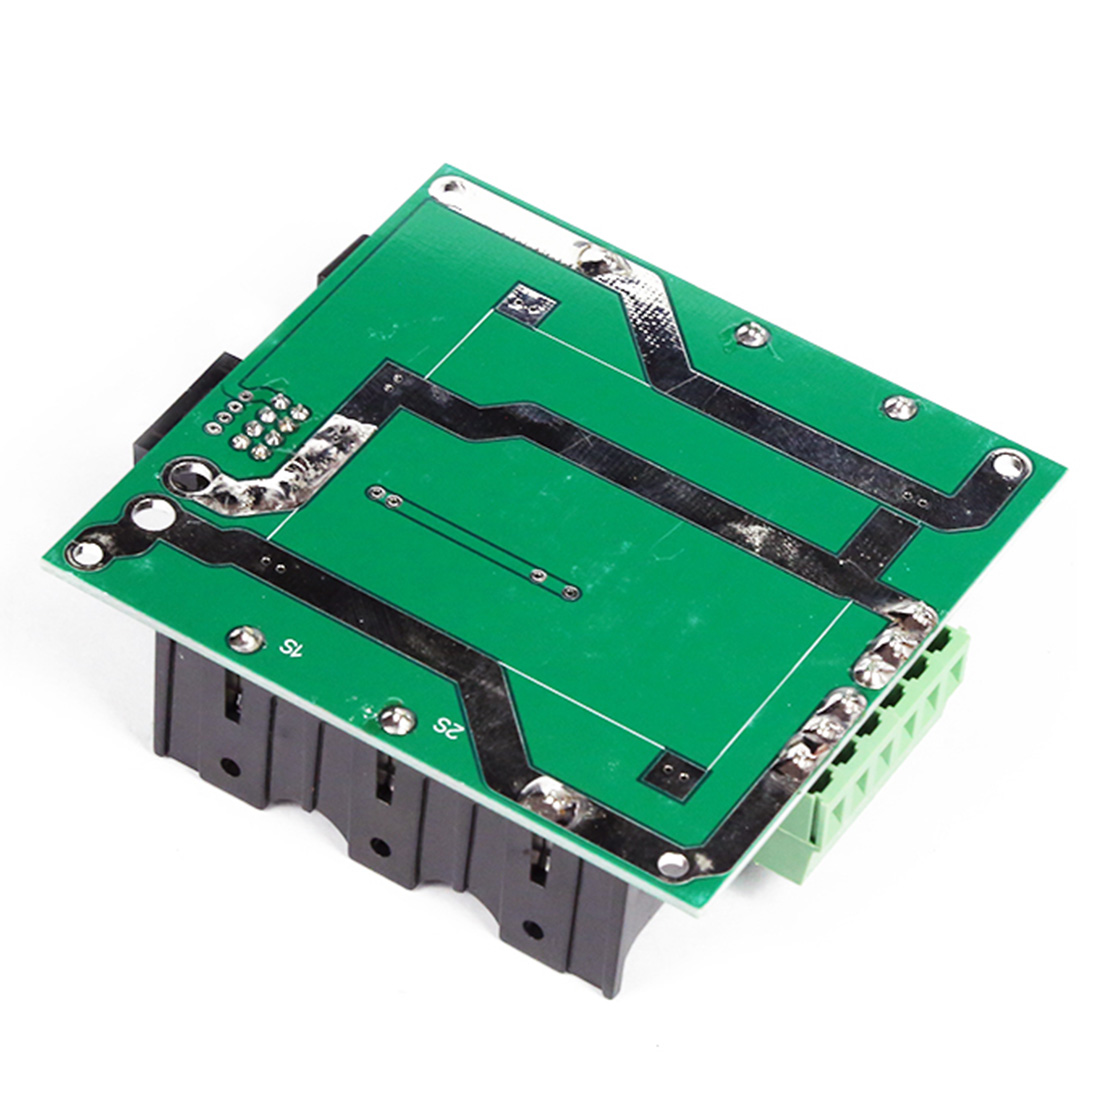 18650 Battery Box 3S Battery Pack Bms Battery Holder Without Protective Board